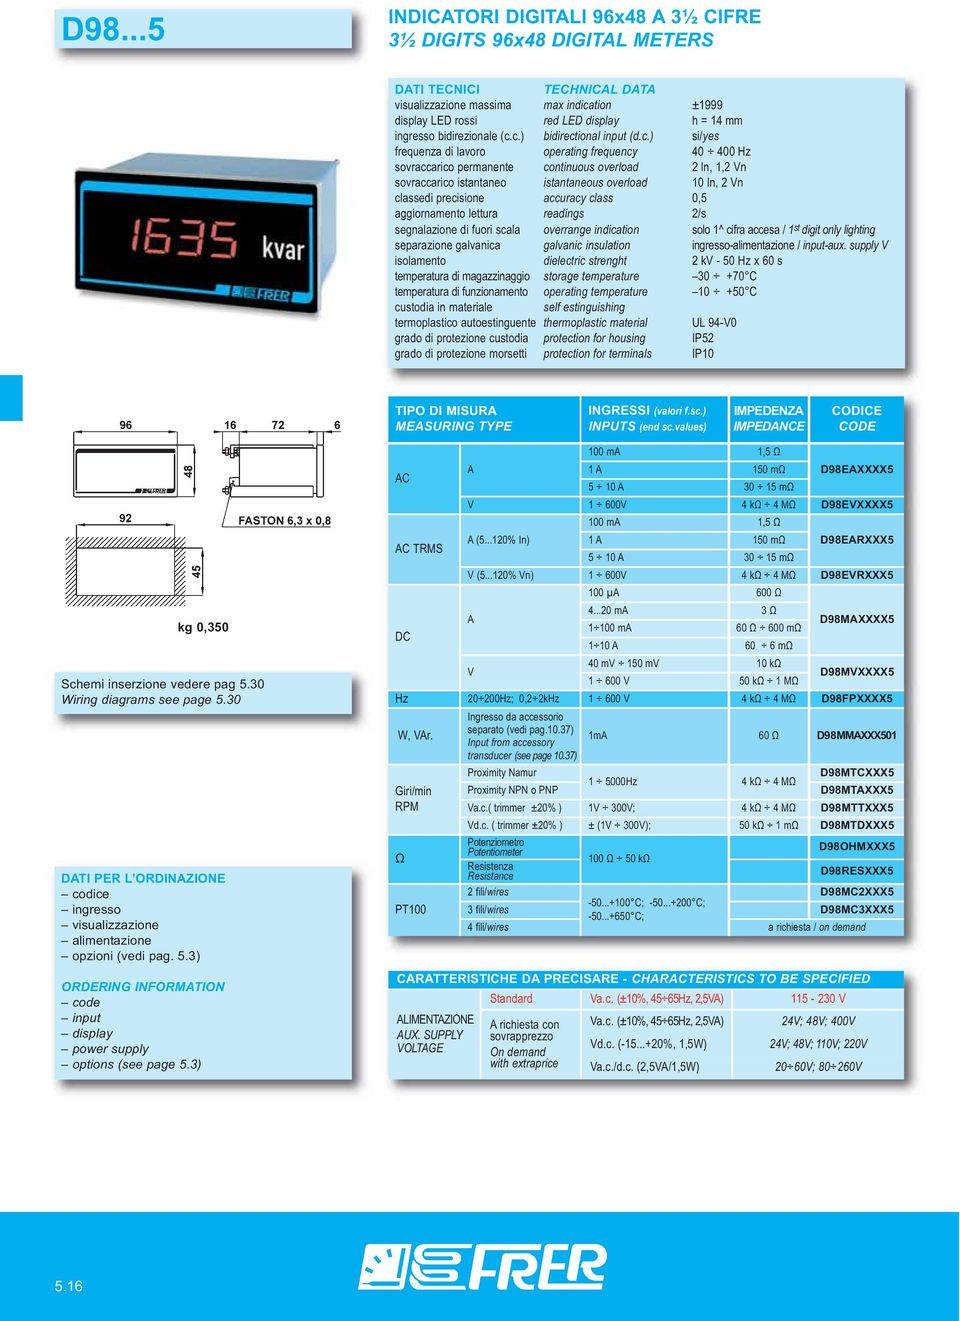 30 Wiring diagrams see page 5.30 DTI PER L ORDINZIONE opzioni (vedi pag. 5.3) ORDERING INFORMTION options (see page 5.